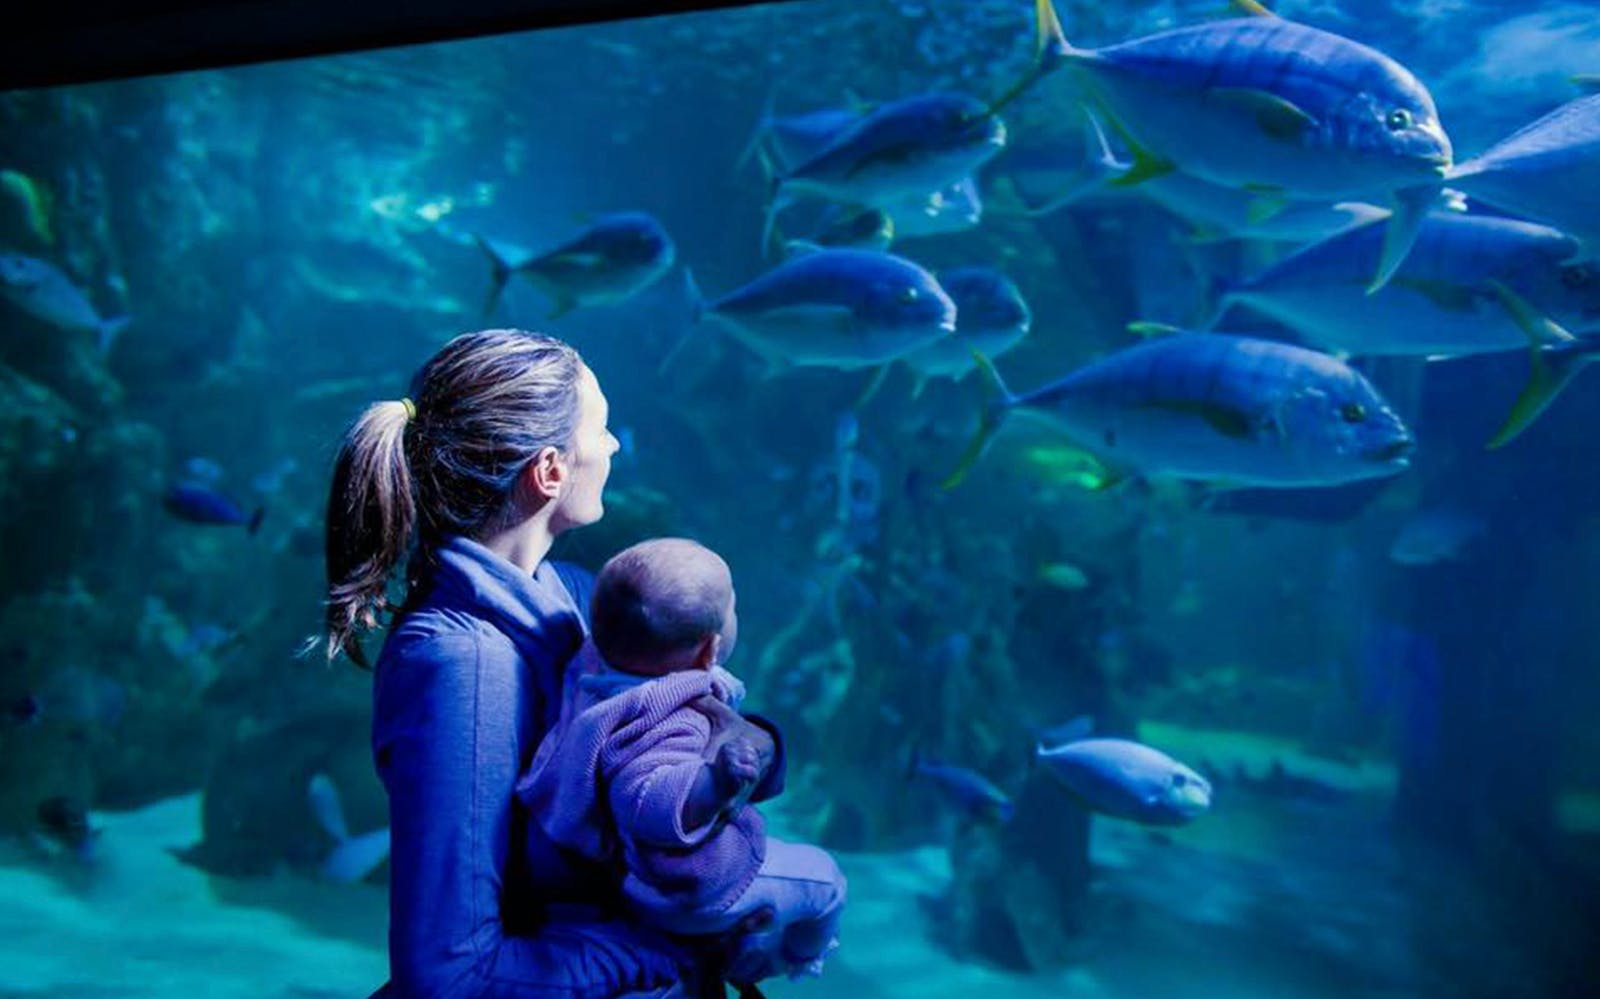 sea life sydney aquarium anytime entry ticket -2